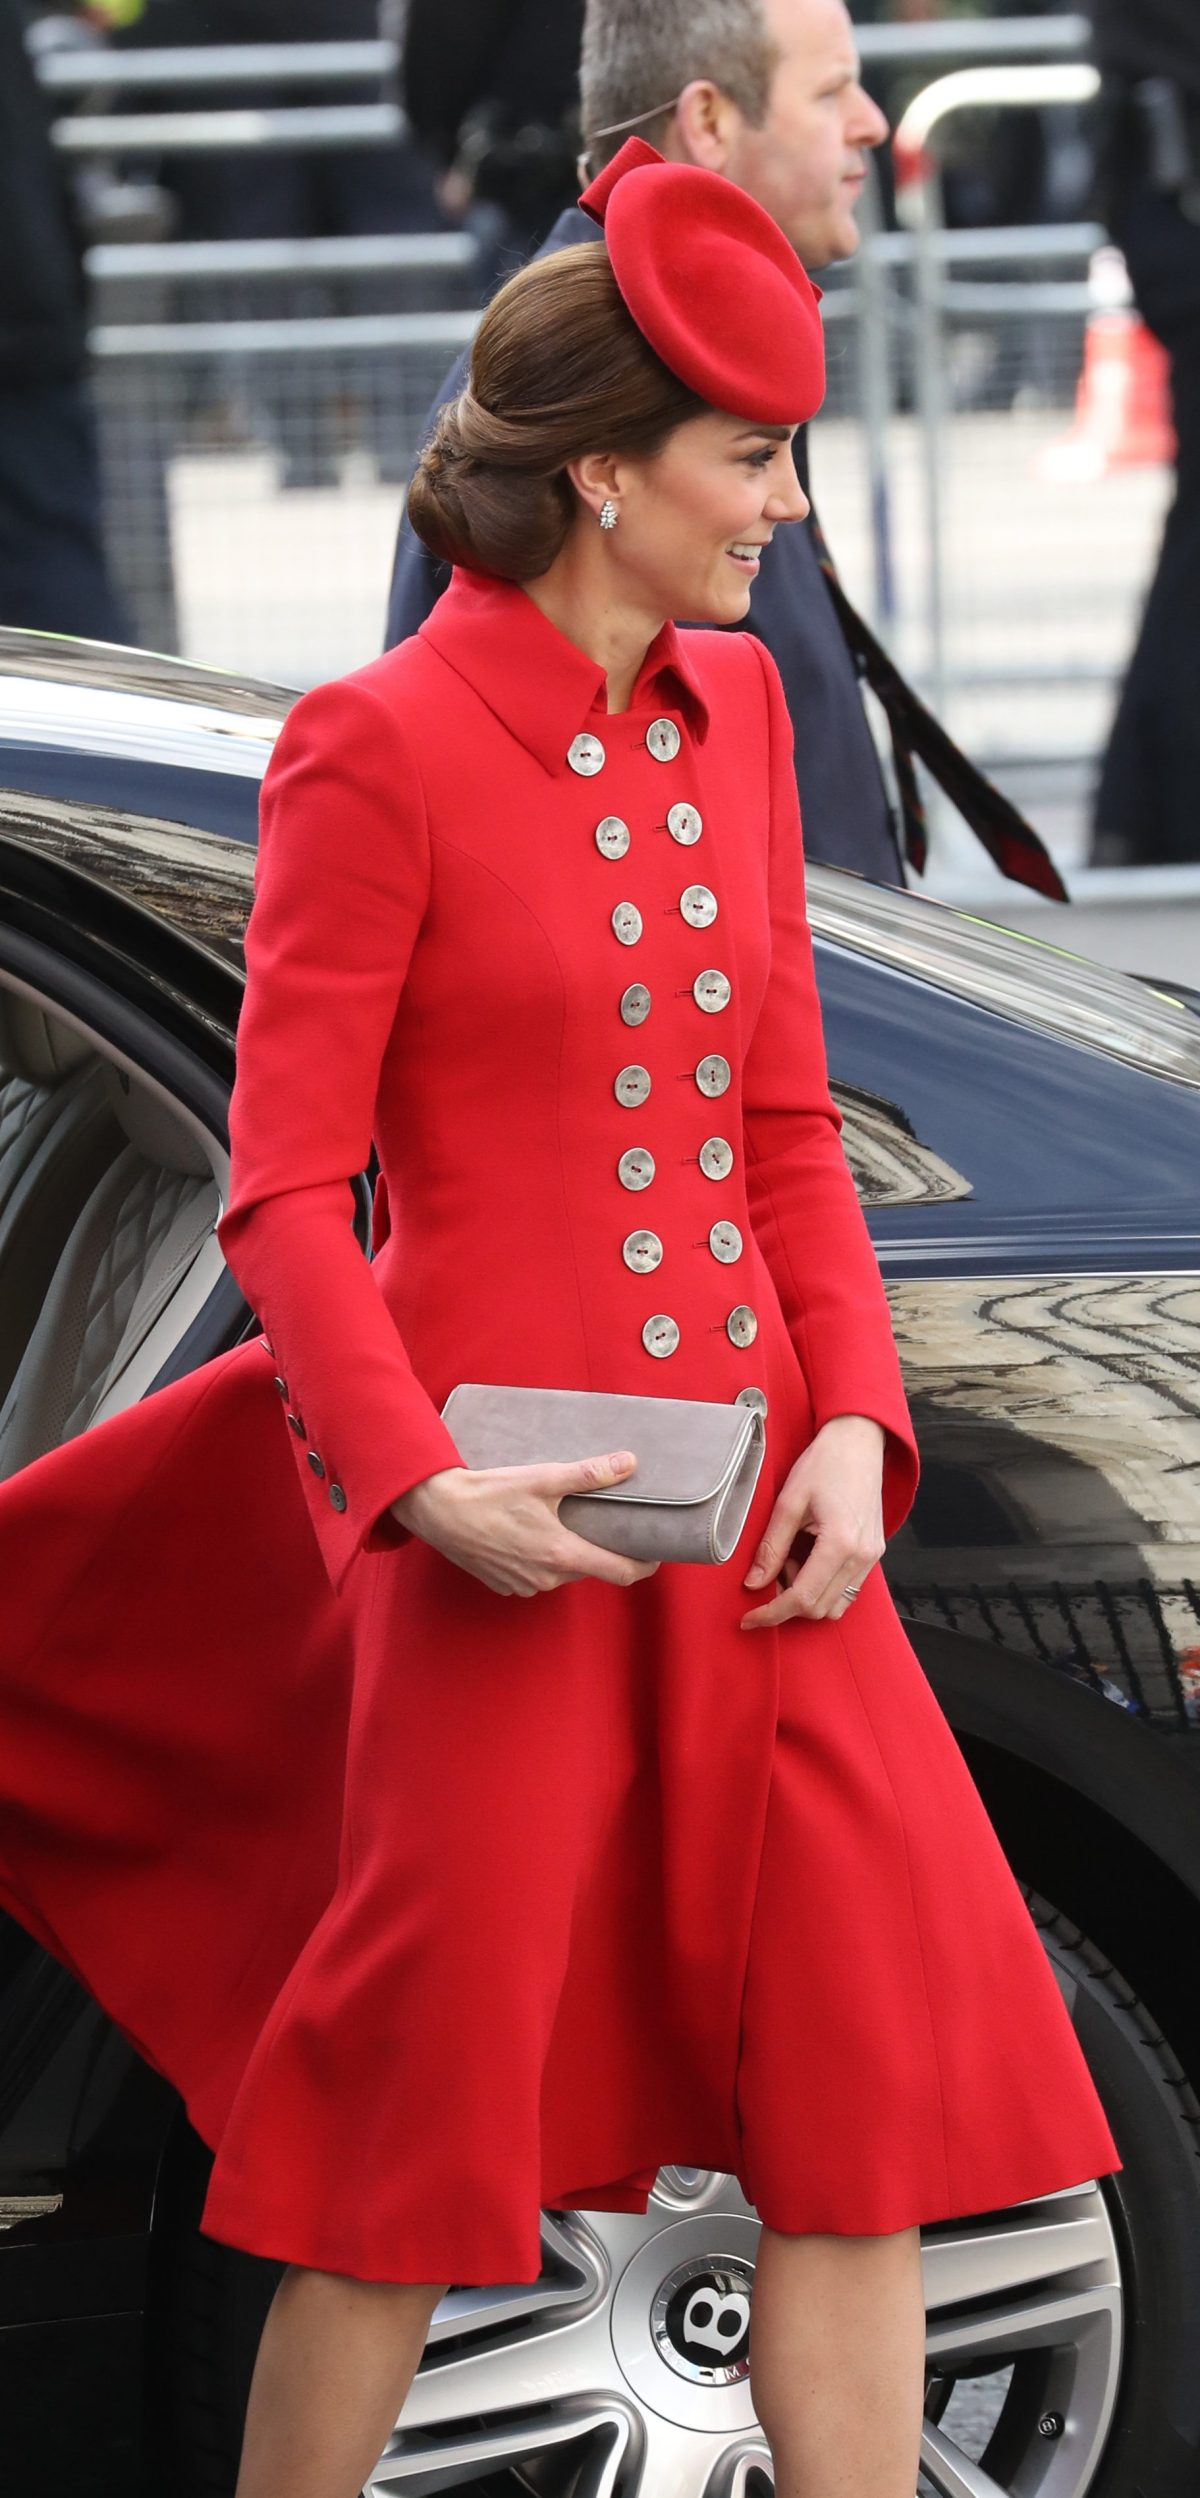 Image licensed to i-Images Picture Agency. 11/03/2019. London, United Kingdom. Royals arriving at a Commonwealth Day service at Westminster Abbey in London.  Picture by Stephen Lock / i-Images